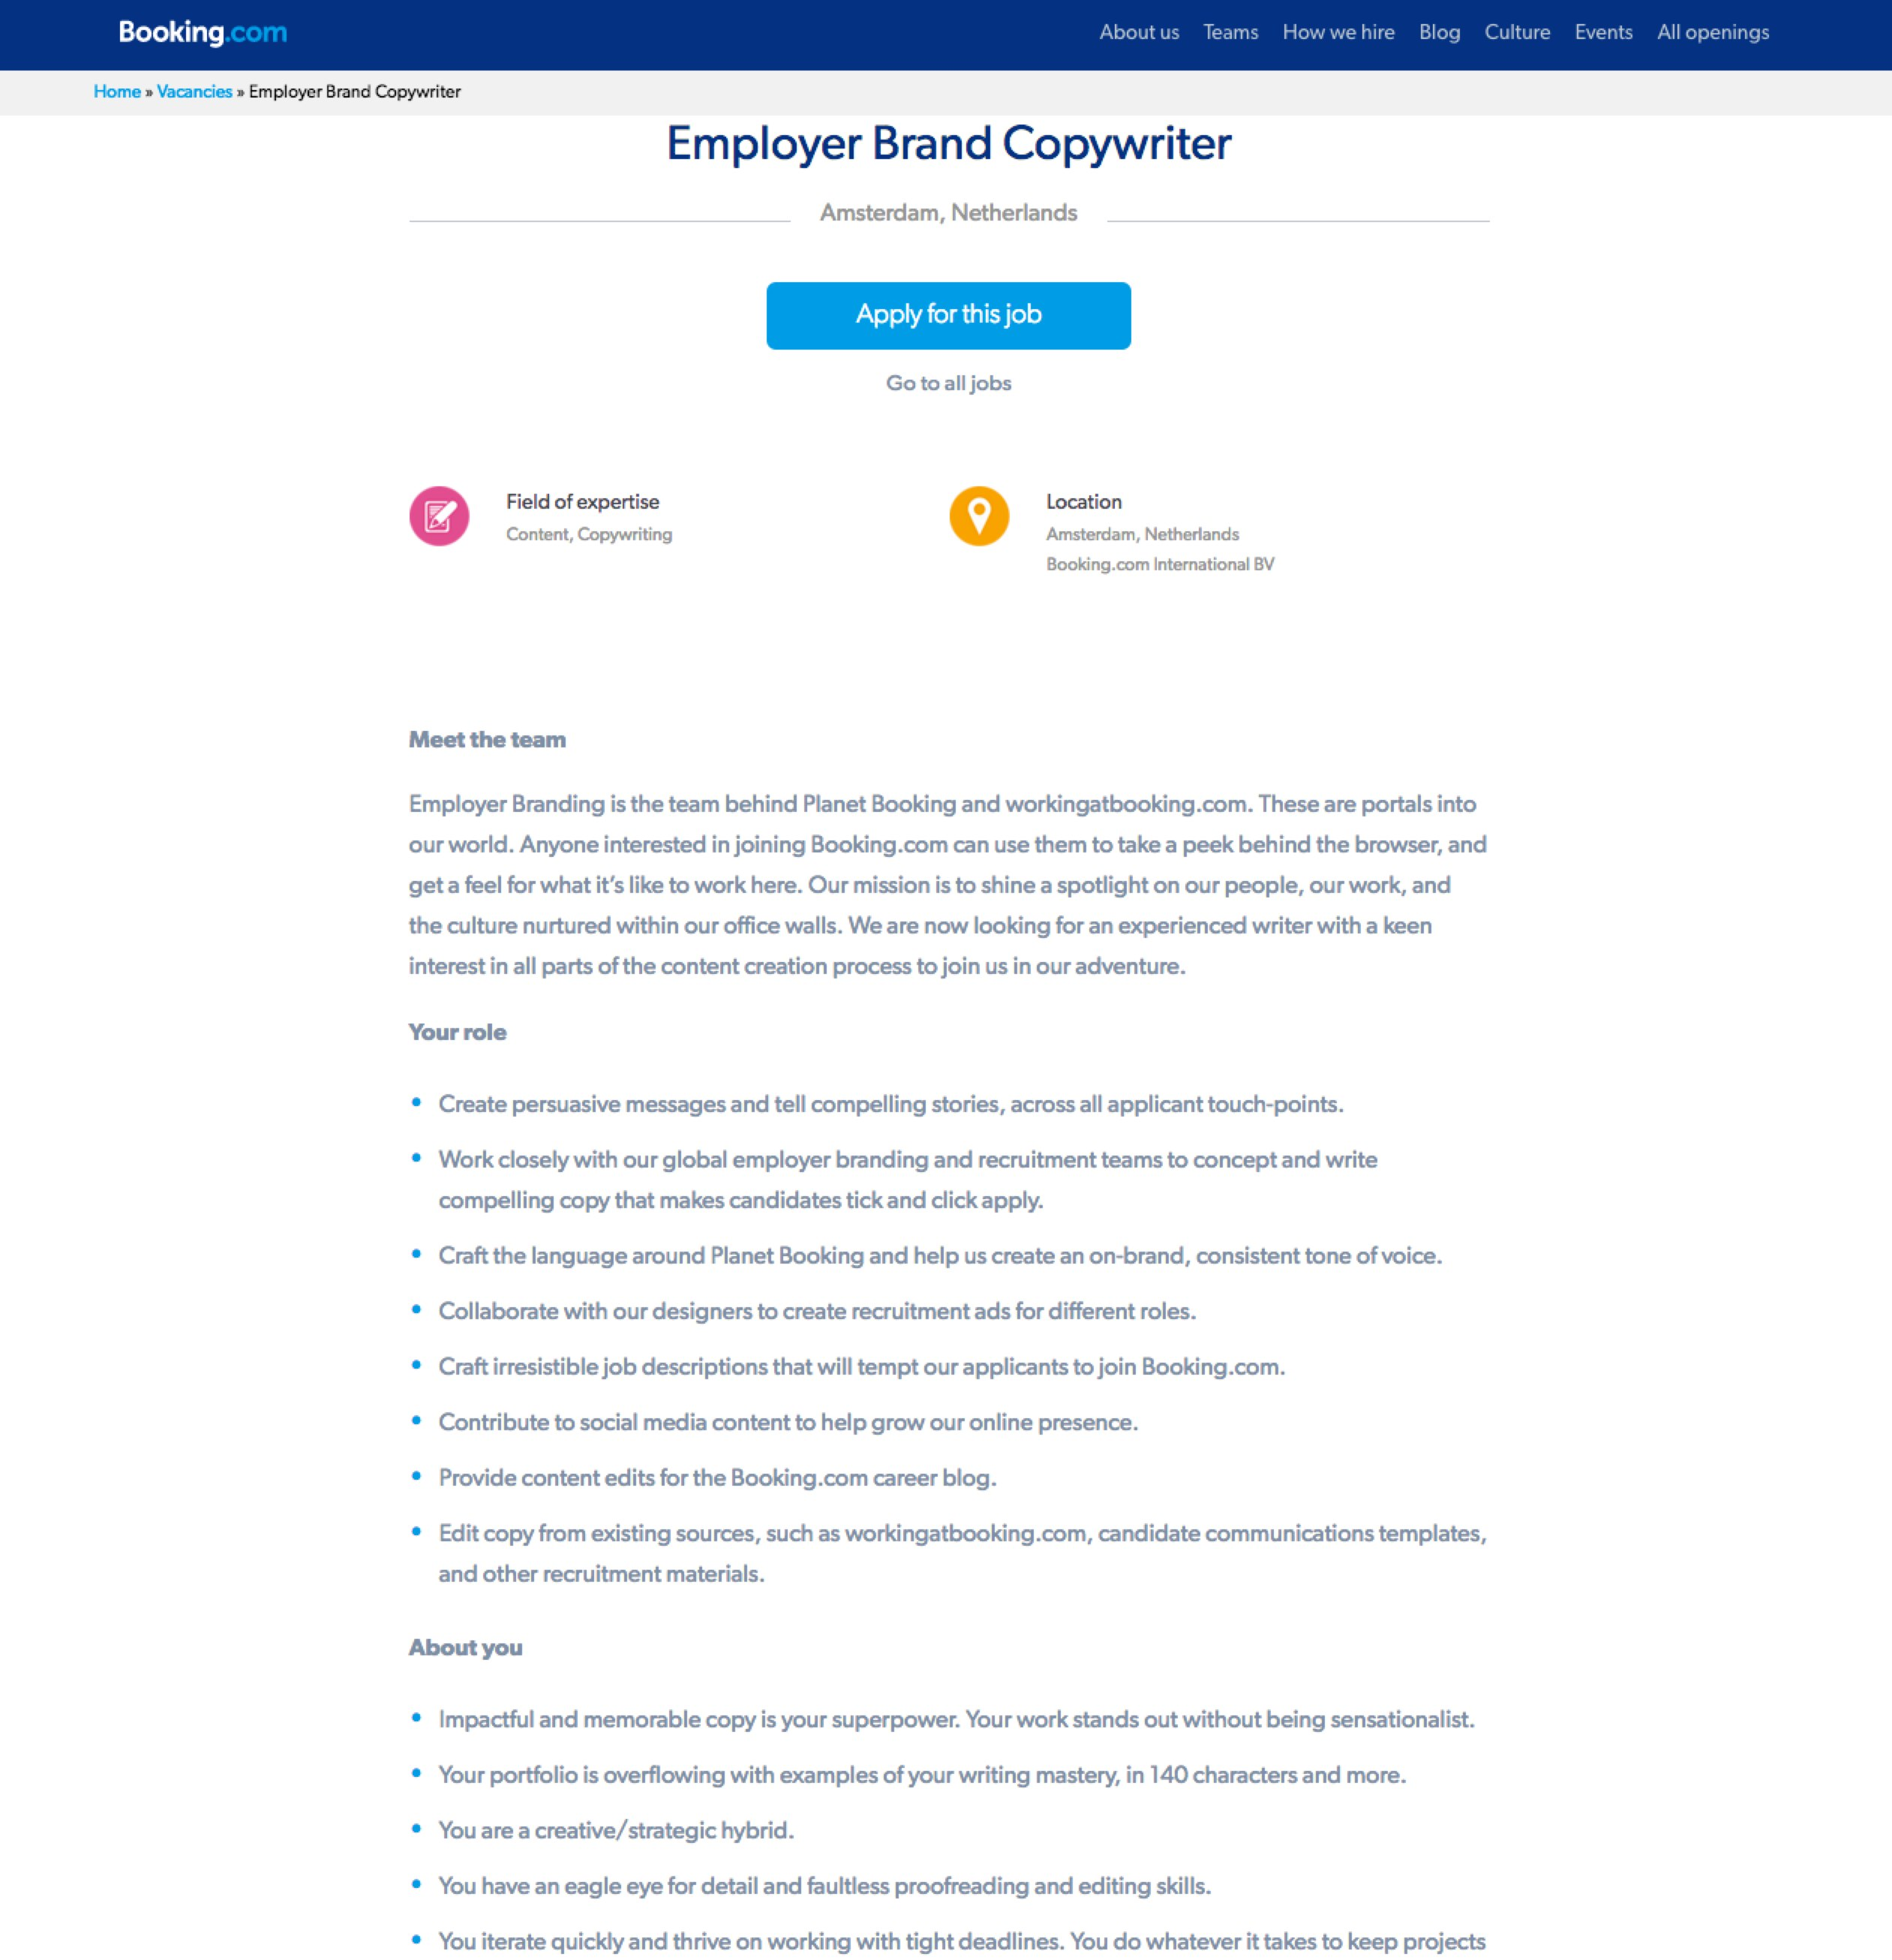 Employer Brand Copywriter Job Description Booking.com | Ongig